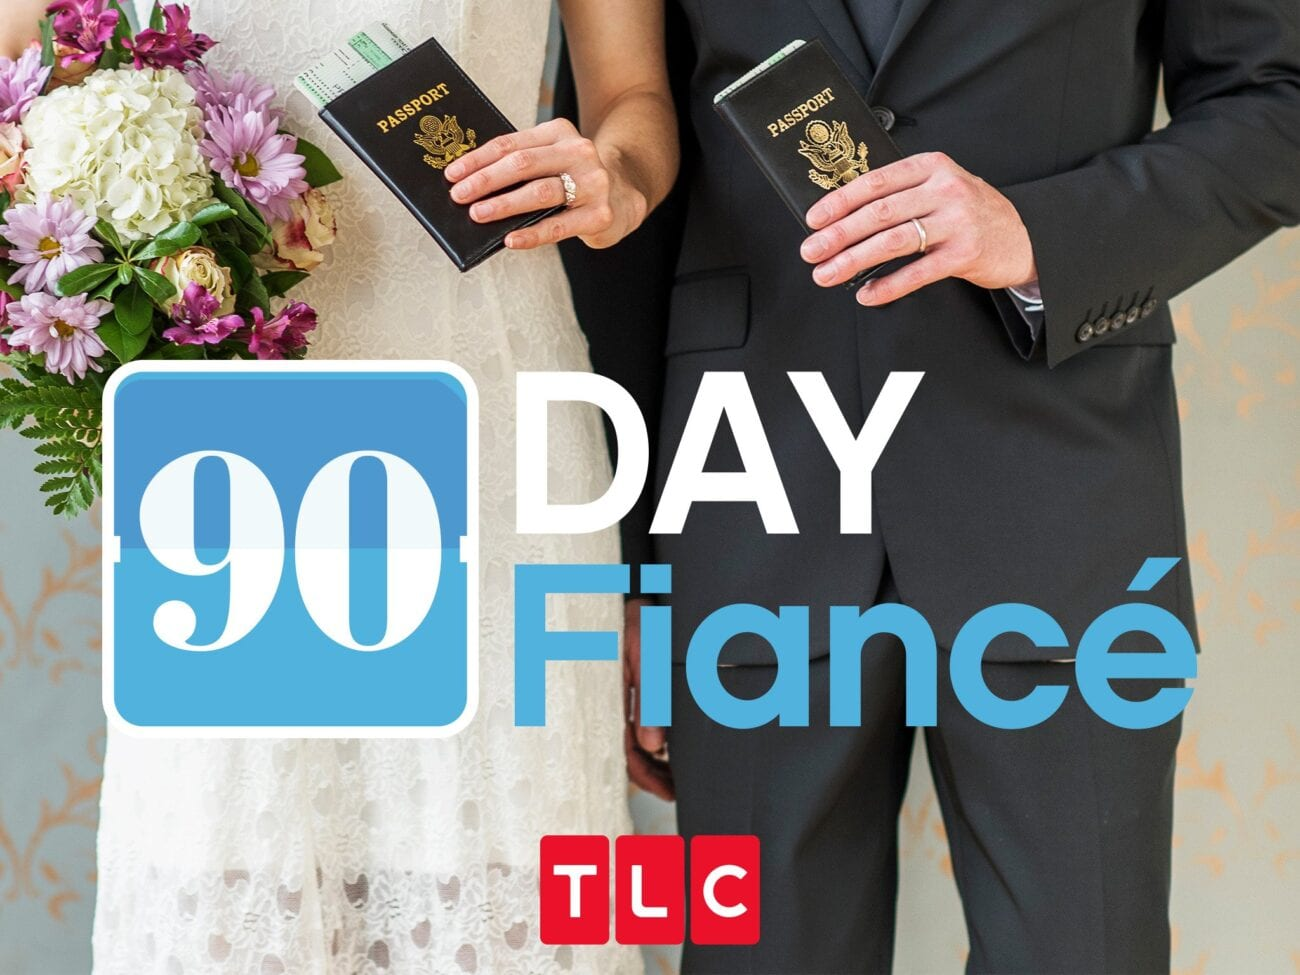 '90 Day Fiance' is a wildly popular reality television show on the TLC network. Here are the most popular couples from the show.